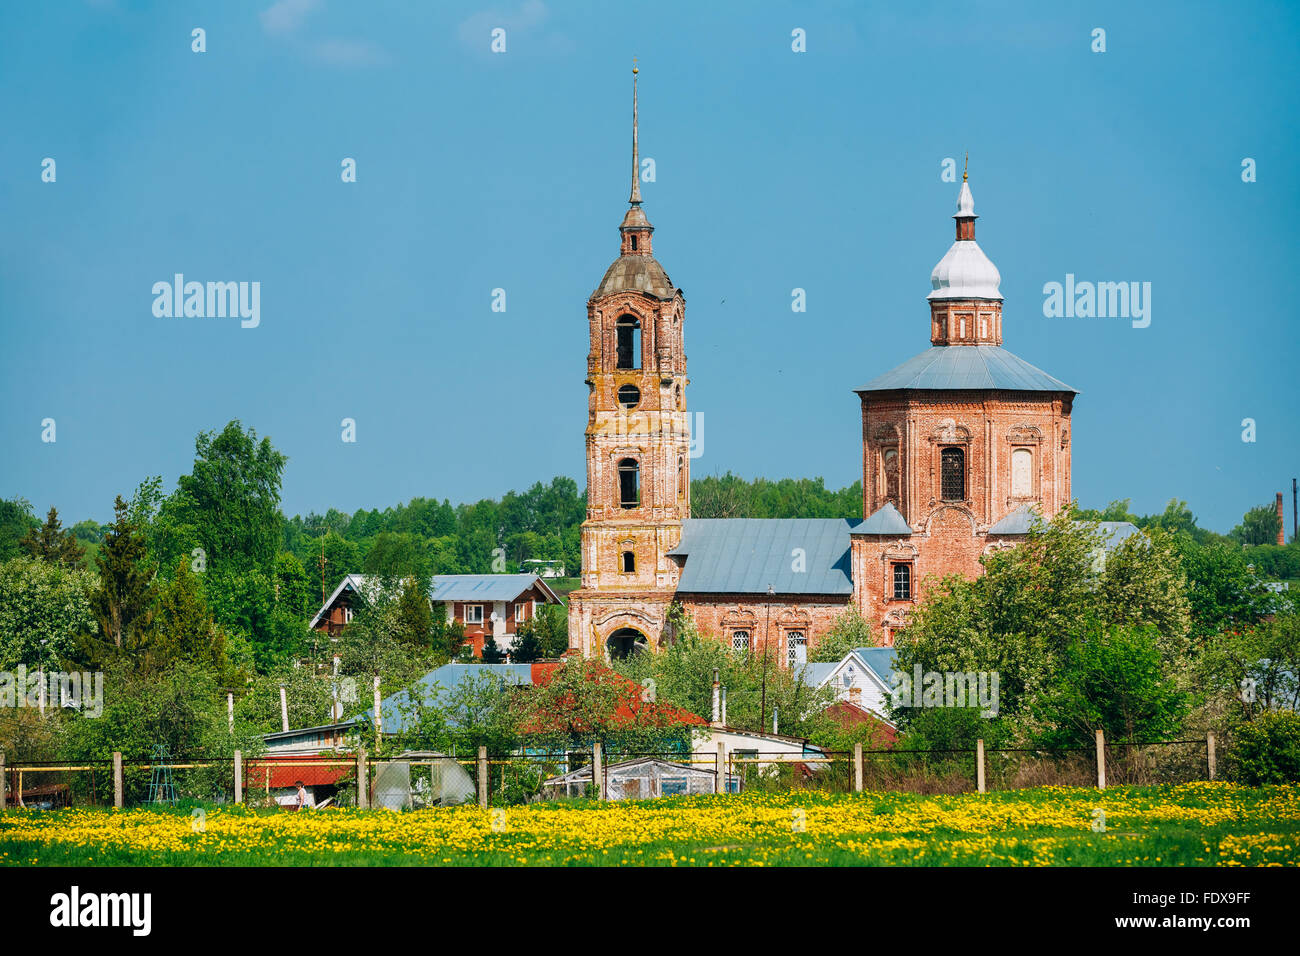 Church of Saints Boris and Gleb in Suzdal, Russia - Stock Image